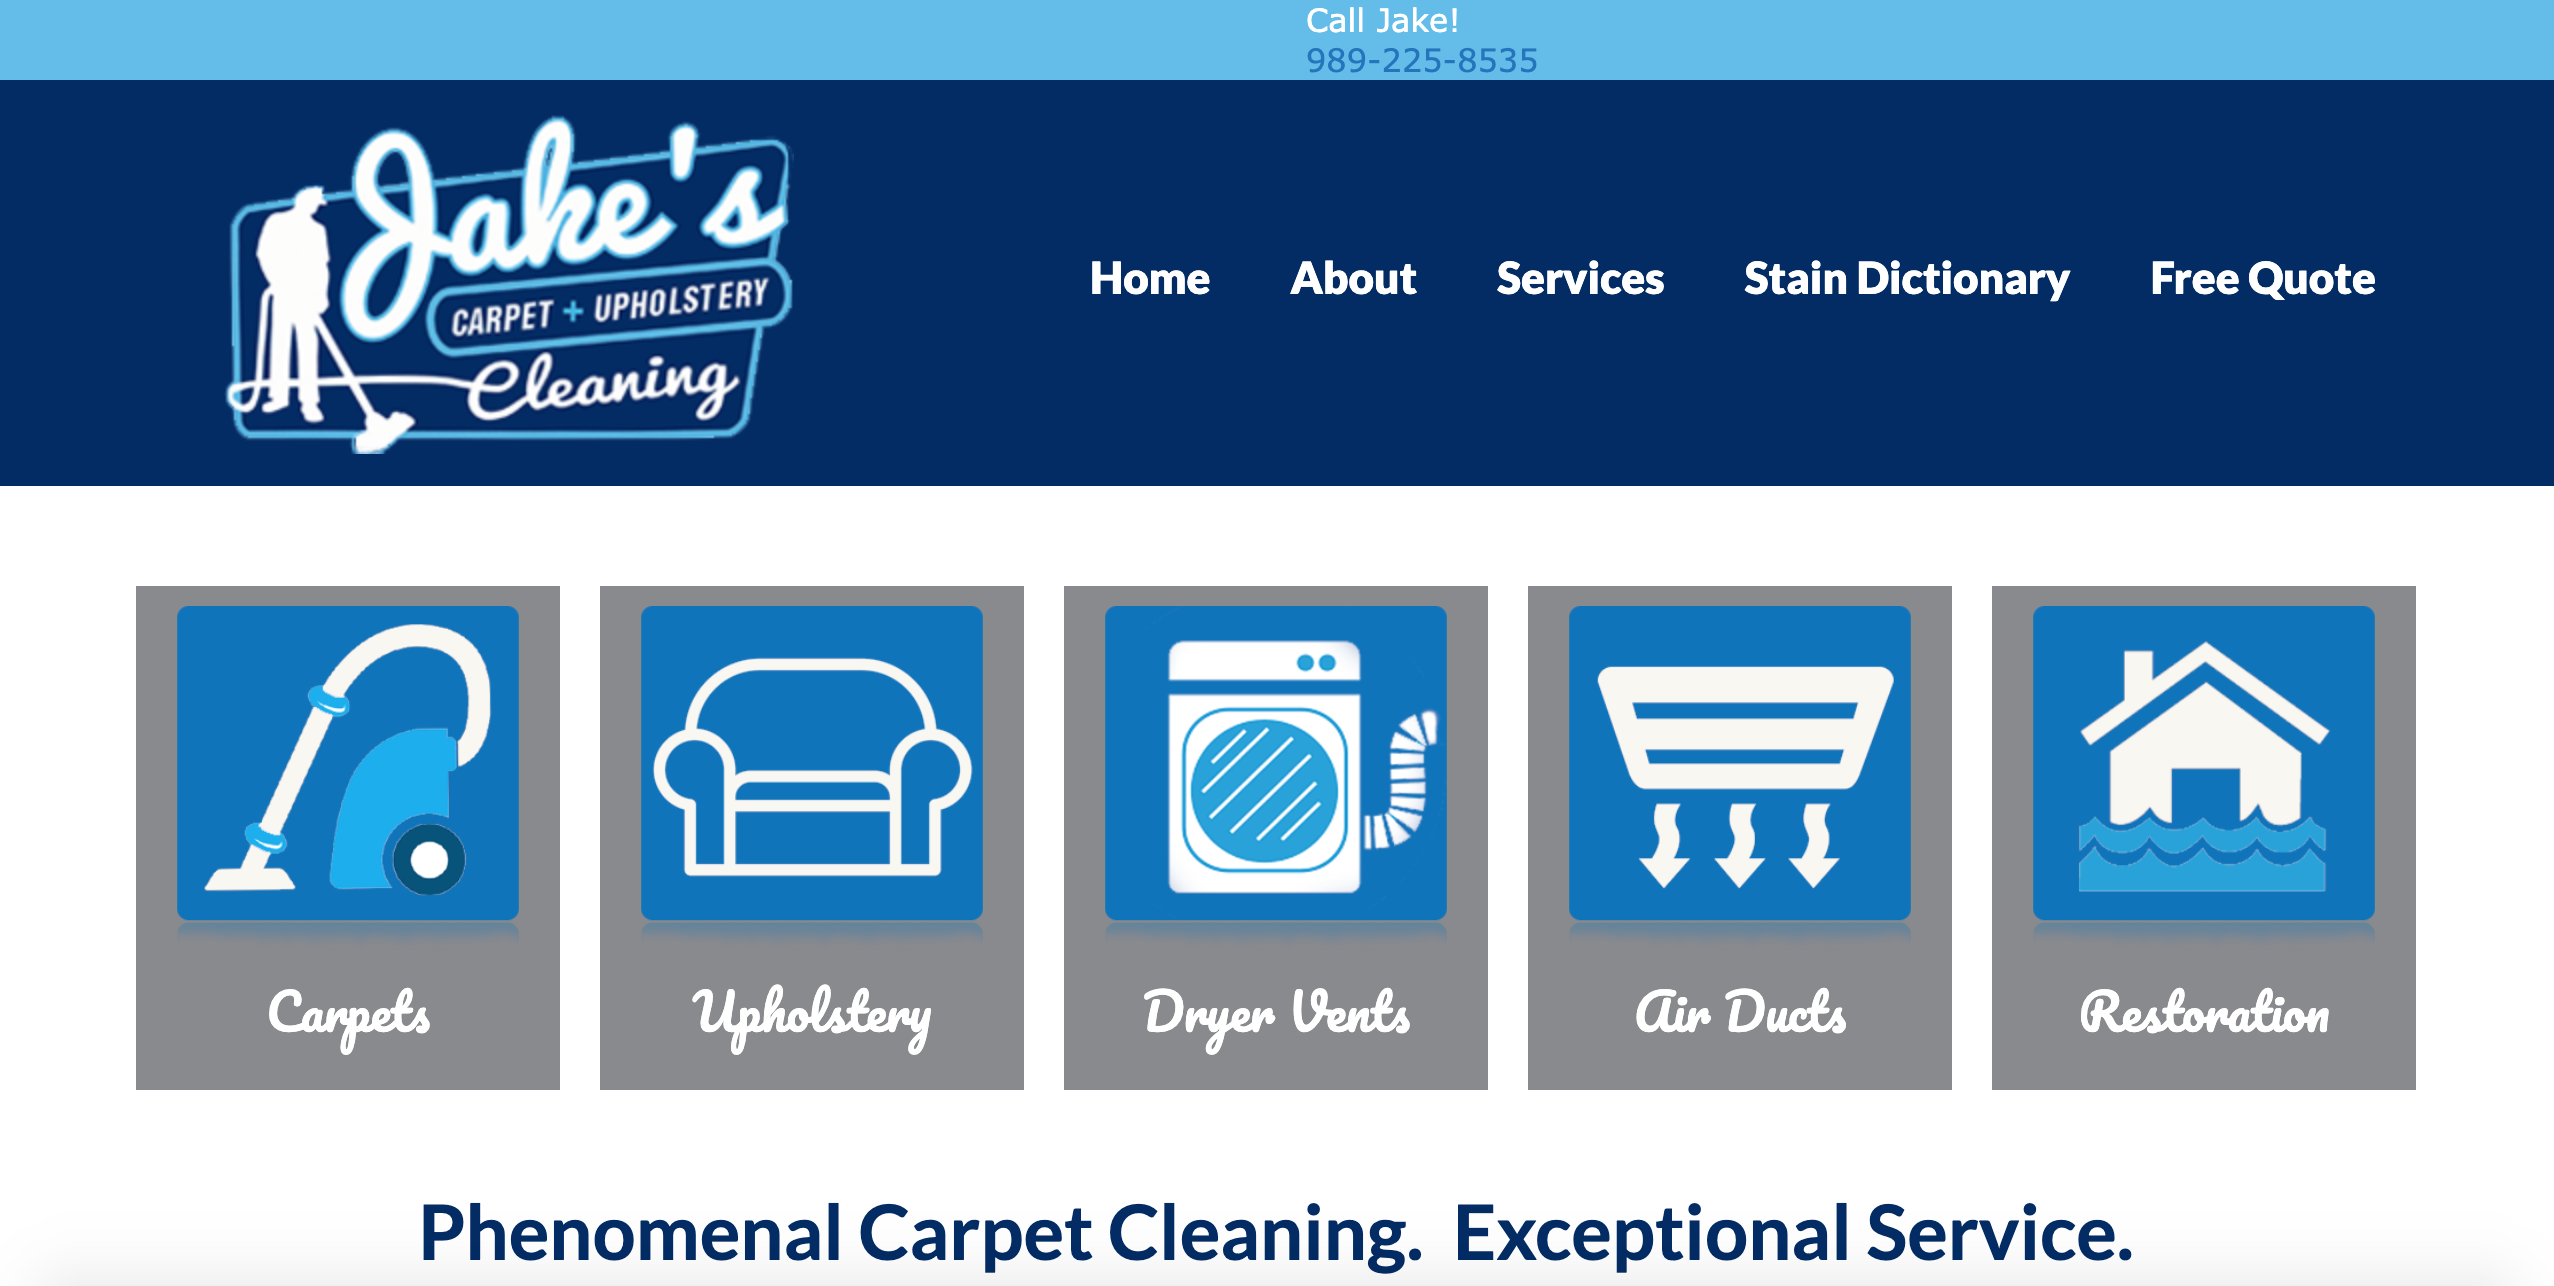 jakes carpet and upholstery cleaning sj digital client